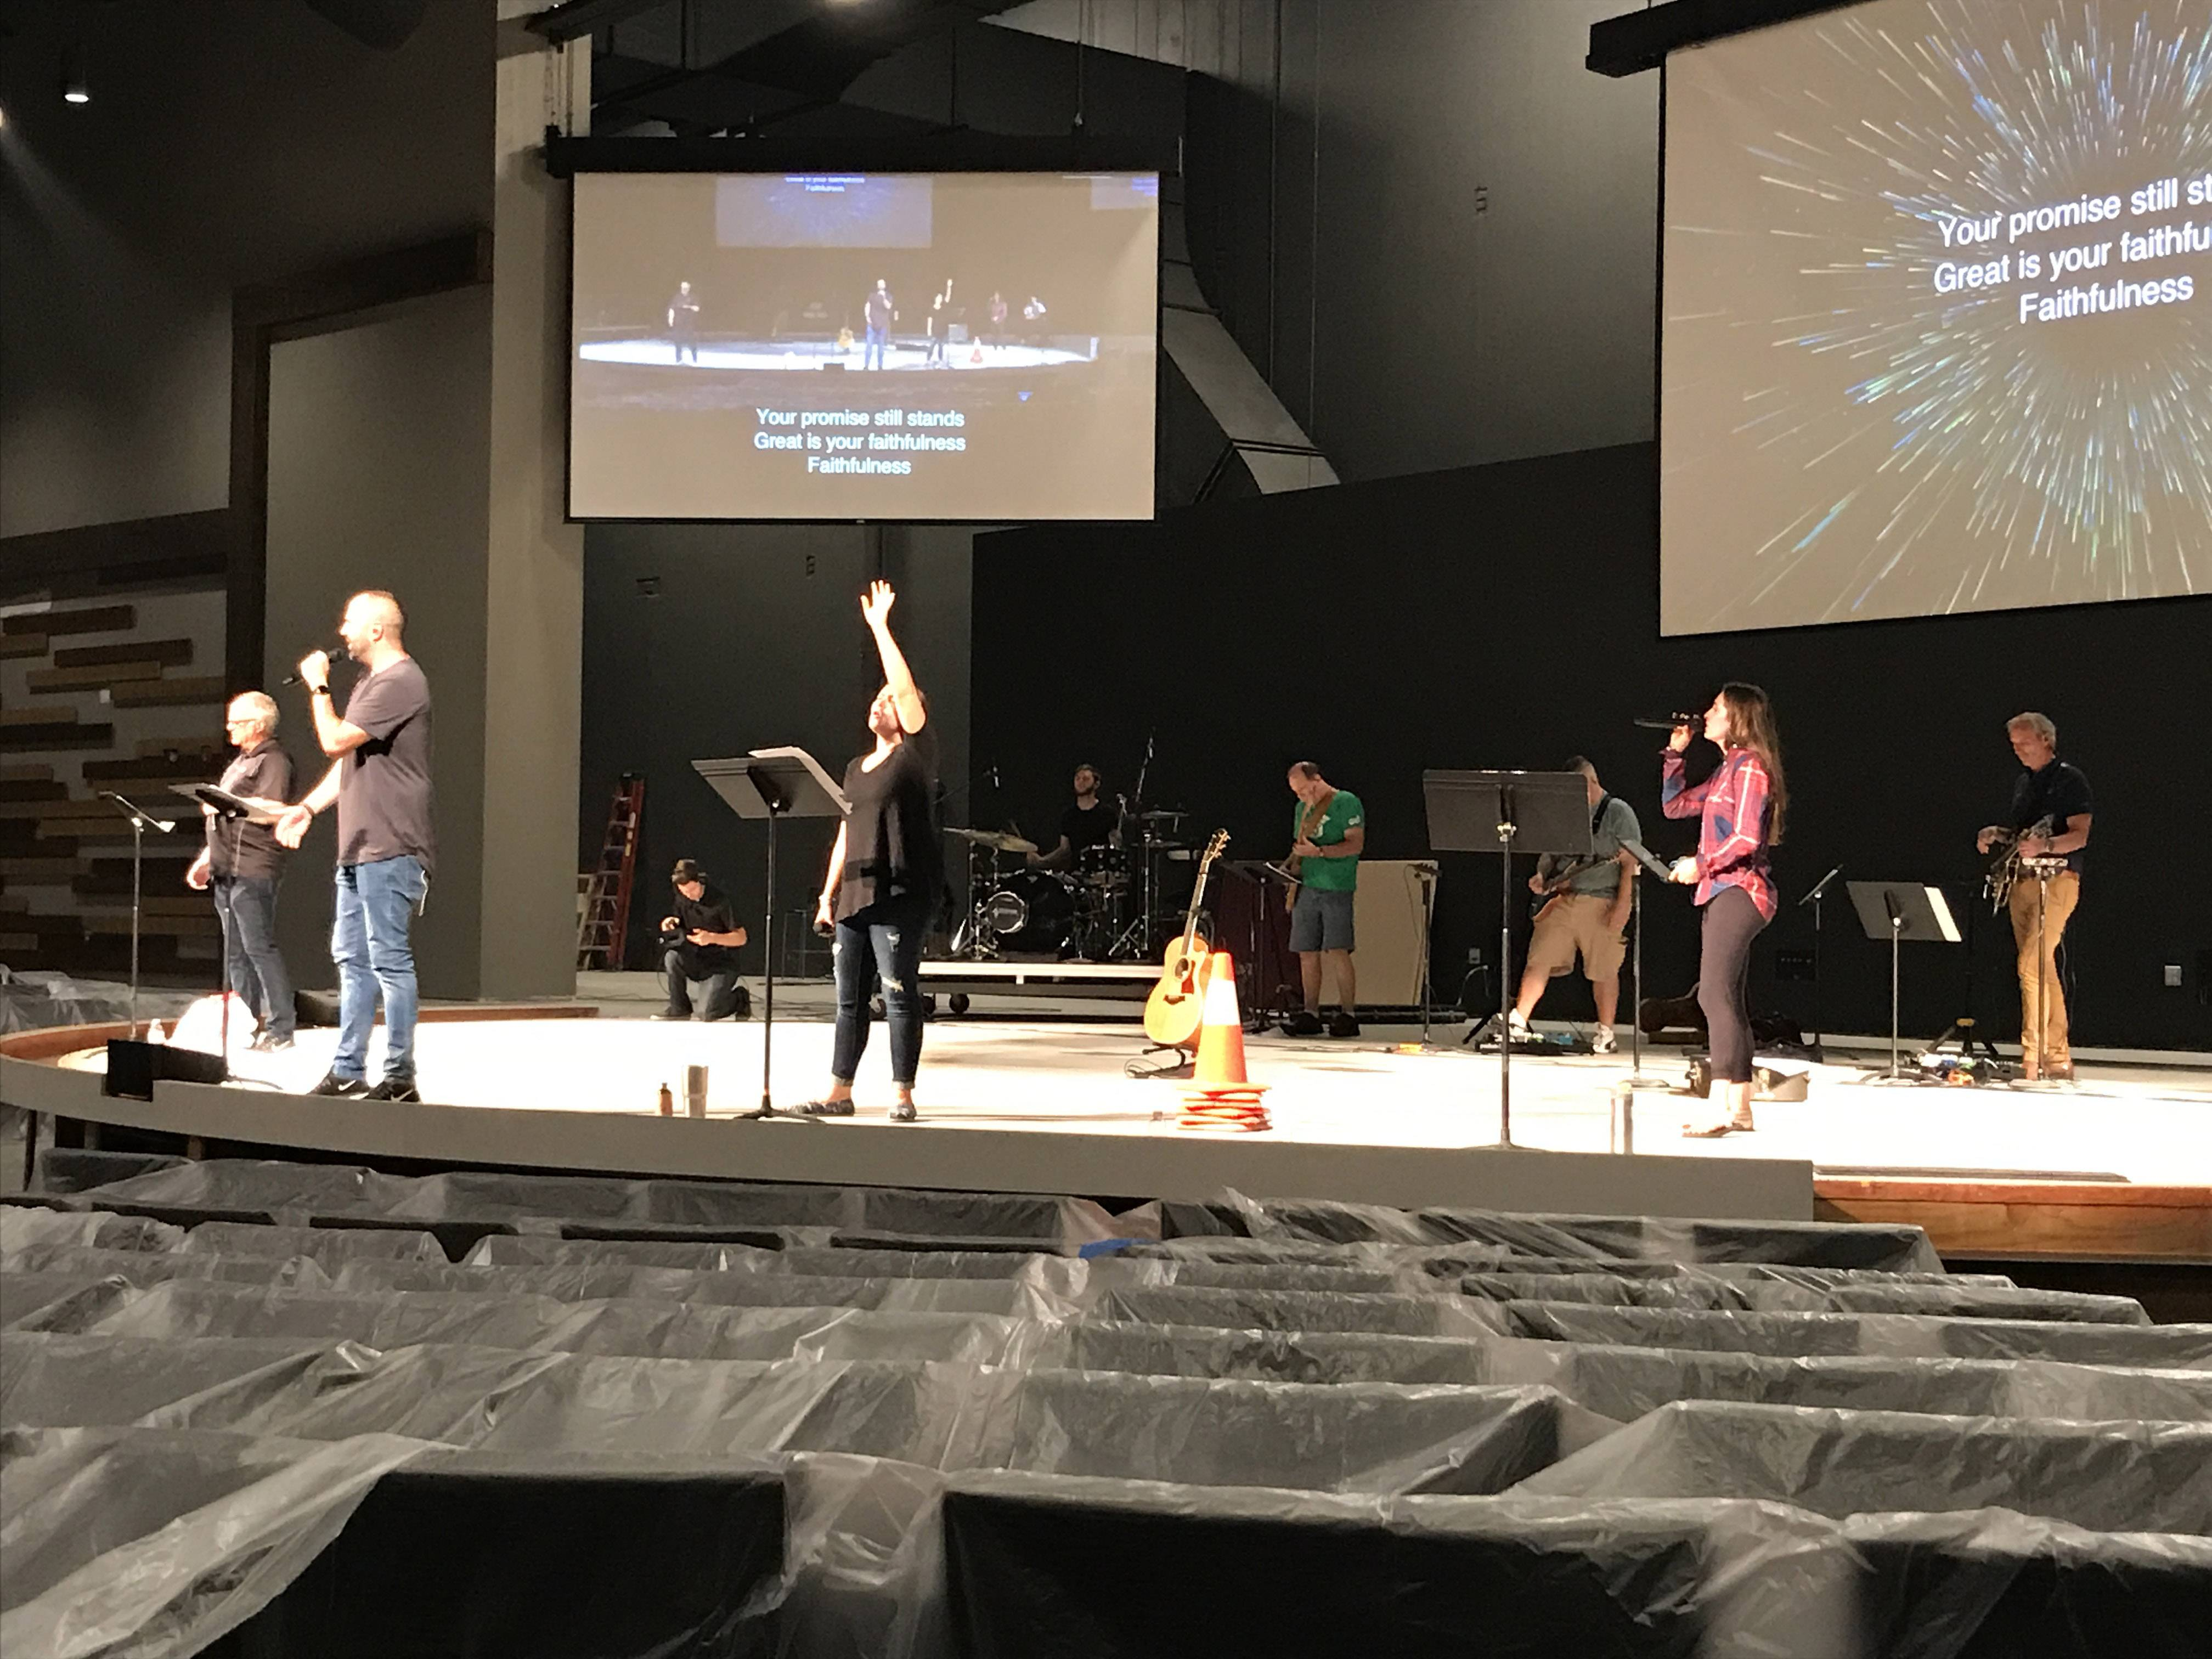 Willow Crystal Lake Church will have a grand opening party and services Oct. 21 and 22 for its permanent new home at 100 S. Main St. in downtown Crystal Lake.